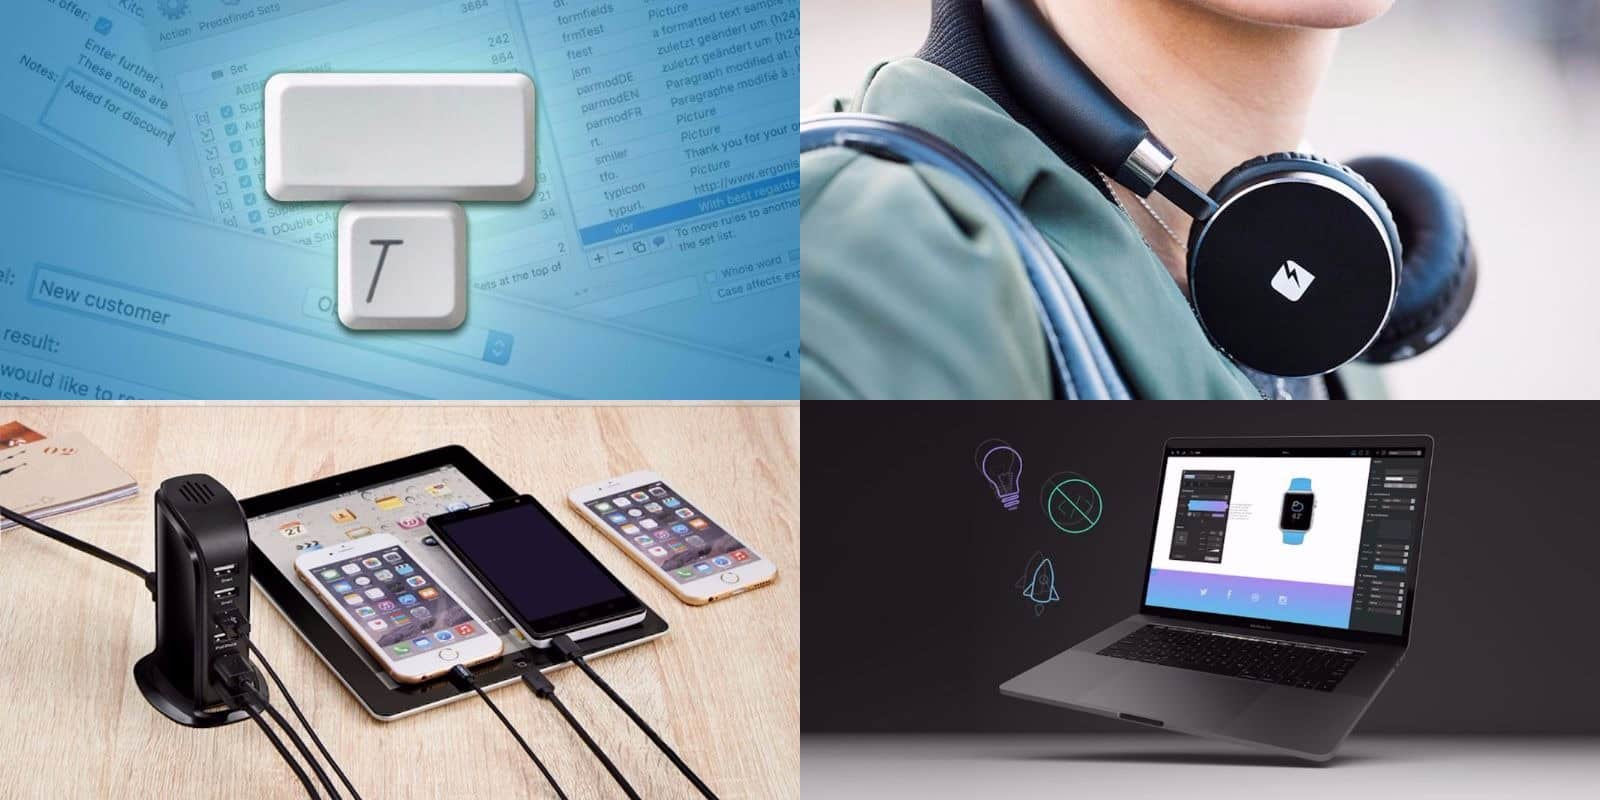 This week's best deals include a keystroke-saving tool, a sleek charging hub, and lots more.